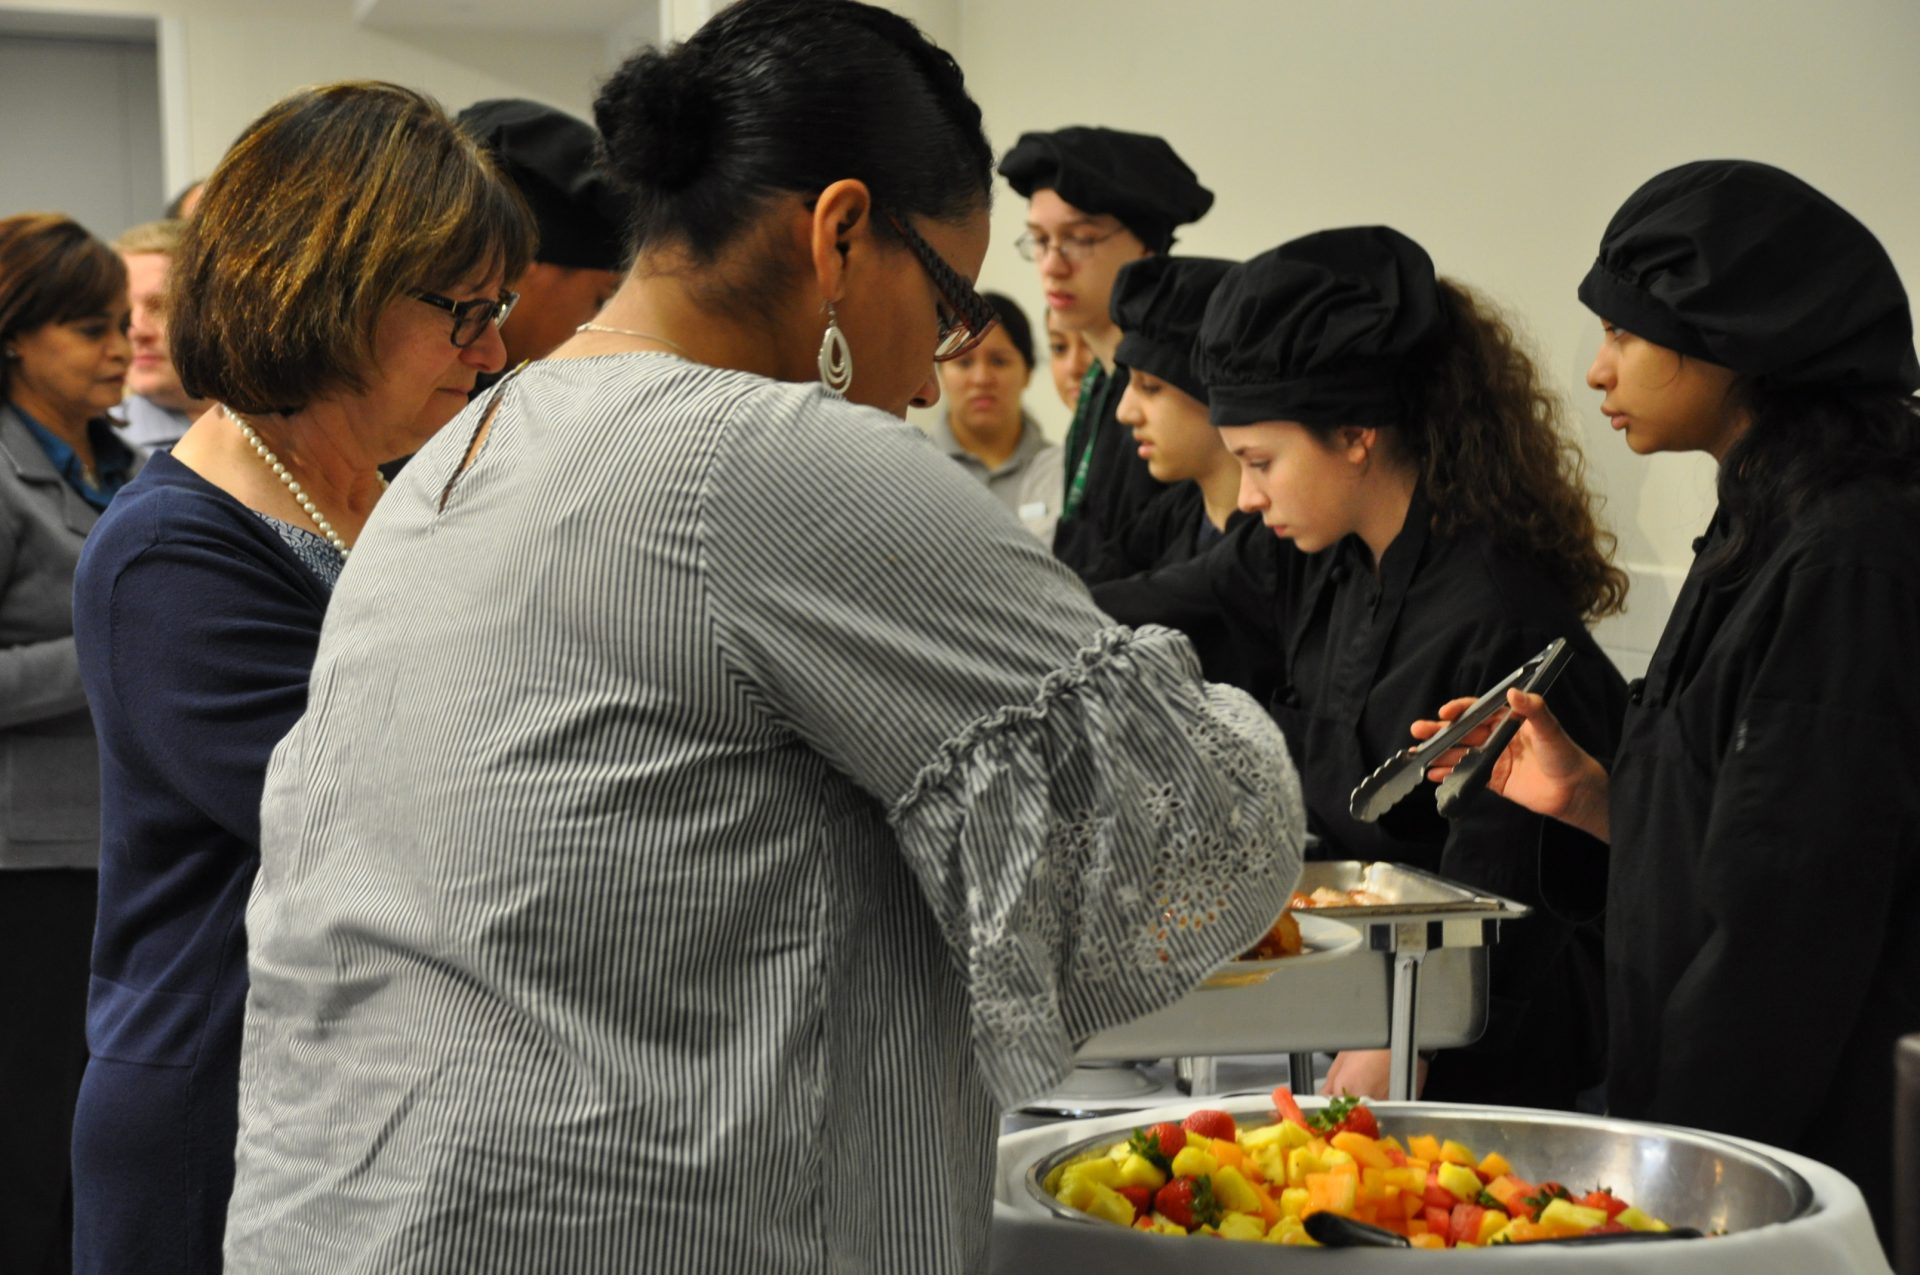 United Way Officials Being Served By Culinary Students